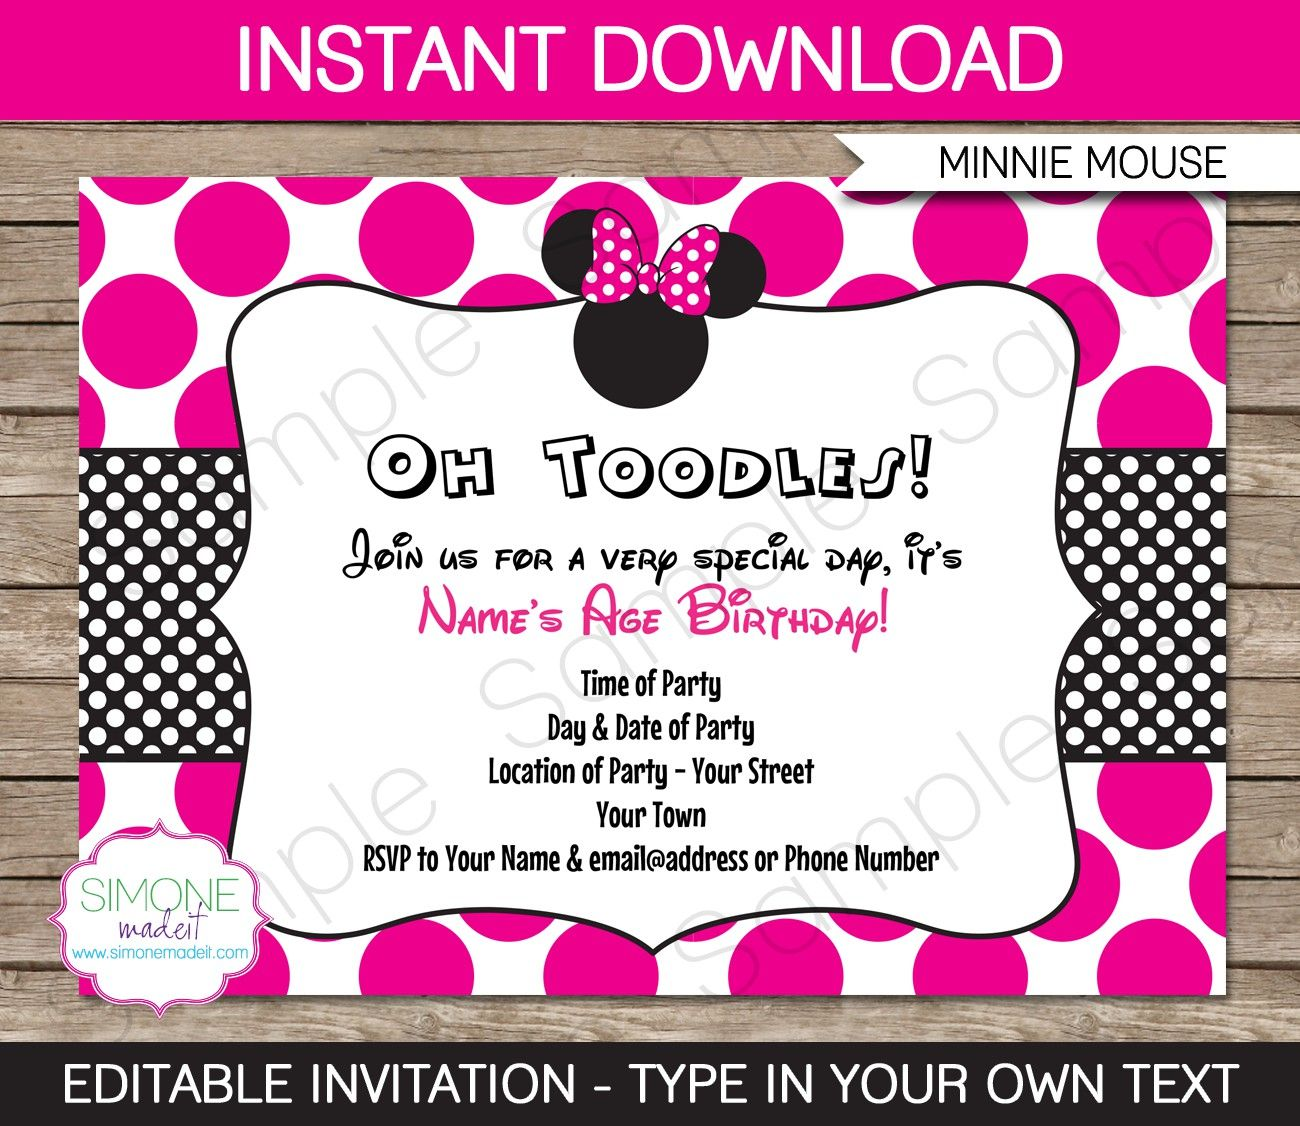 Free Invitation Templates Minnie Mouse 2015 Baby Grant 1st